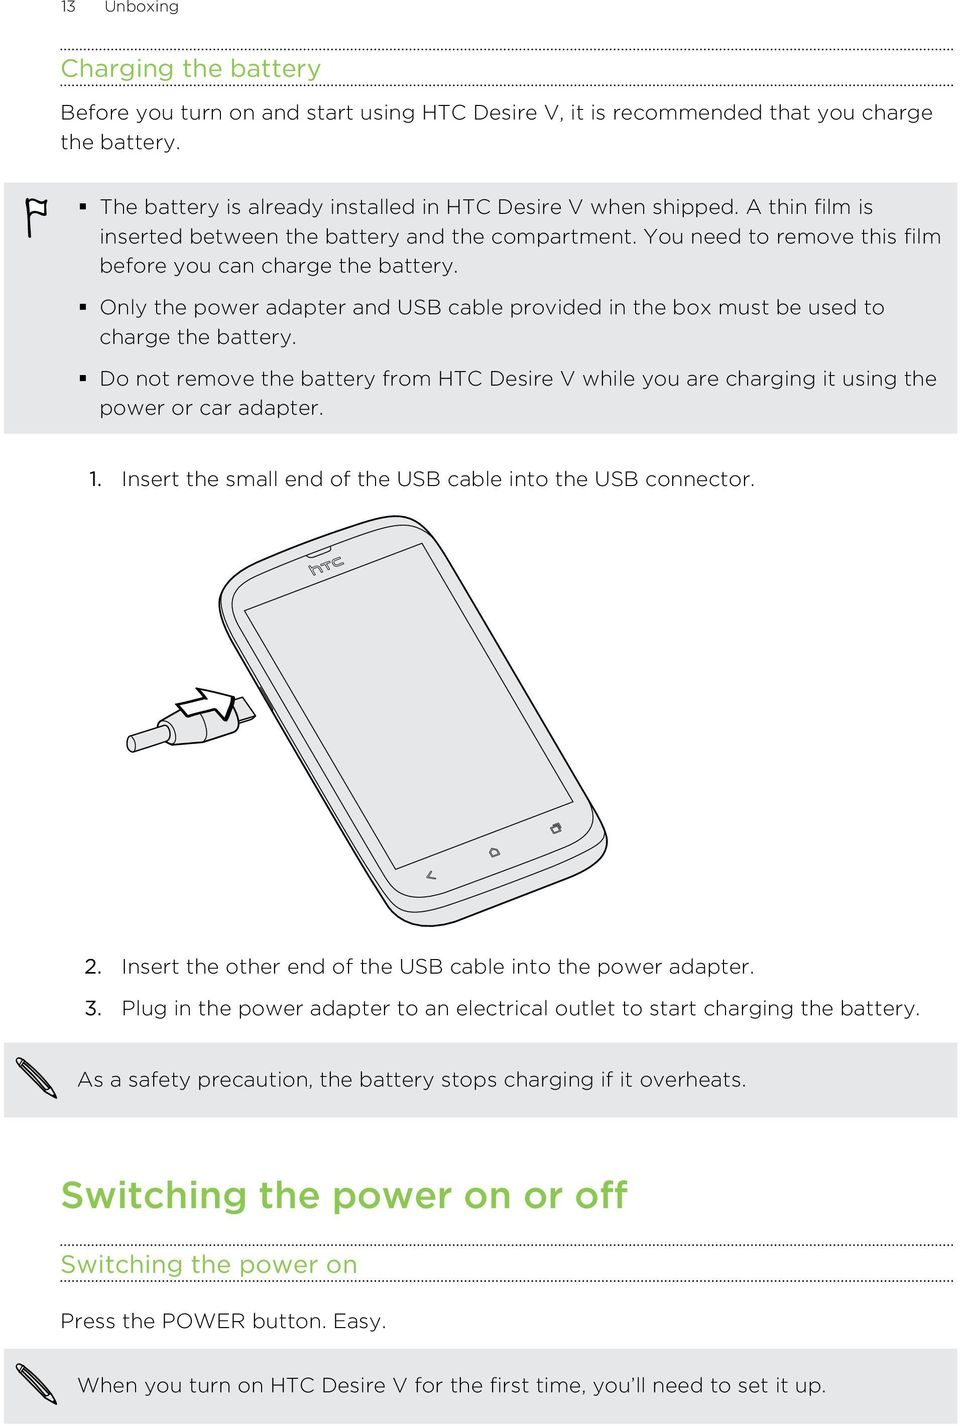 Only the power adapter and USB cable provided in the box must be used to charge the battery. Do not remove the battery from HTC Desire V while you are charging it using the power or car adapter. 1.